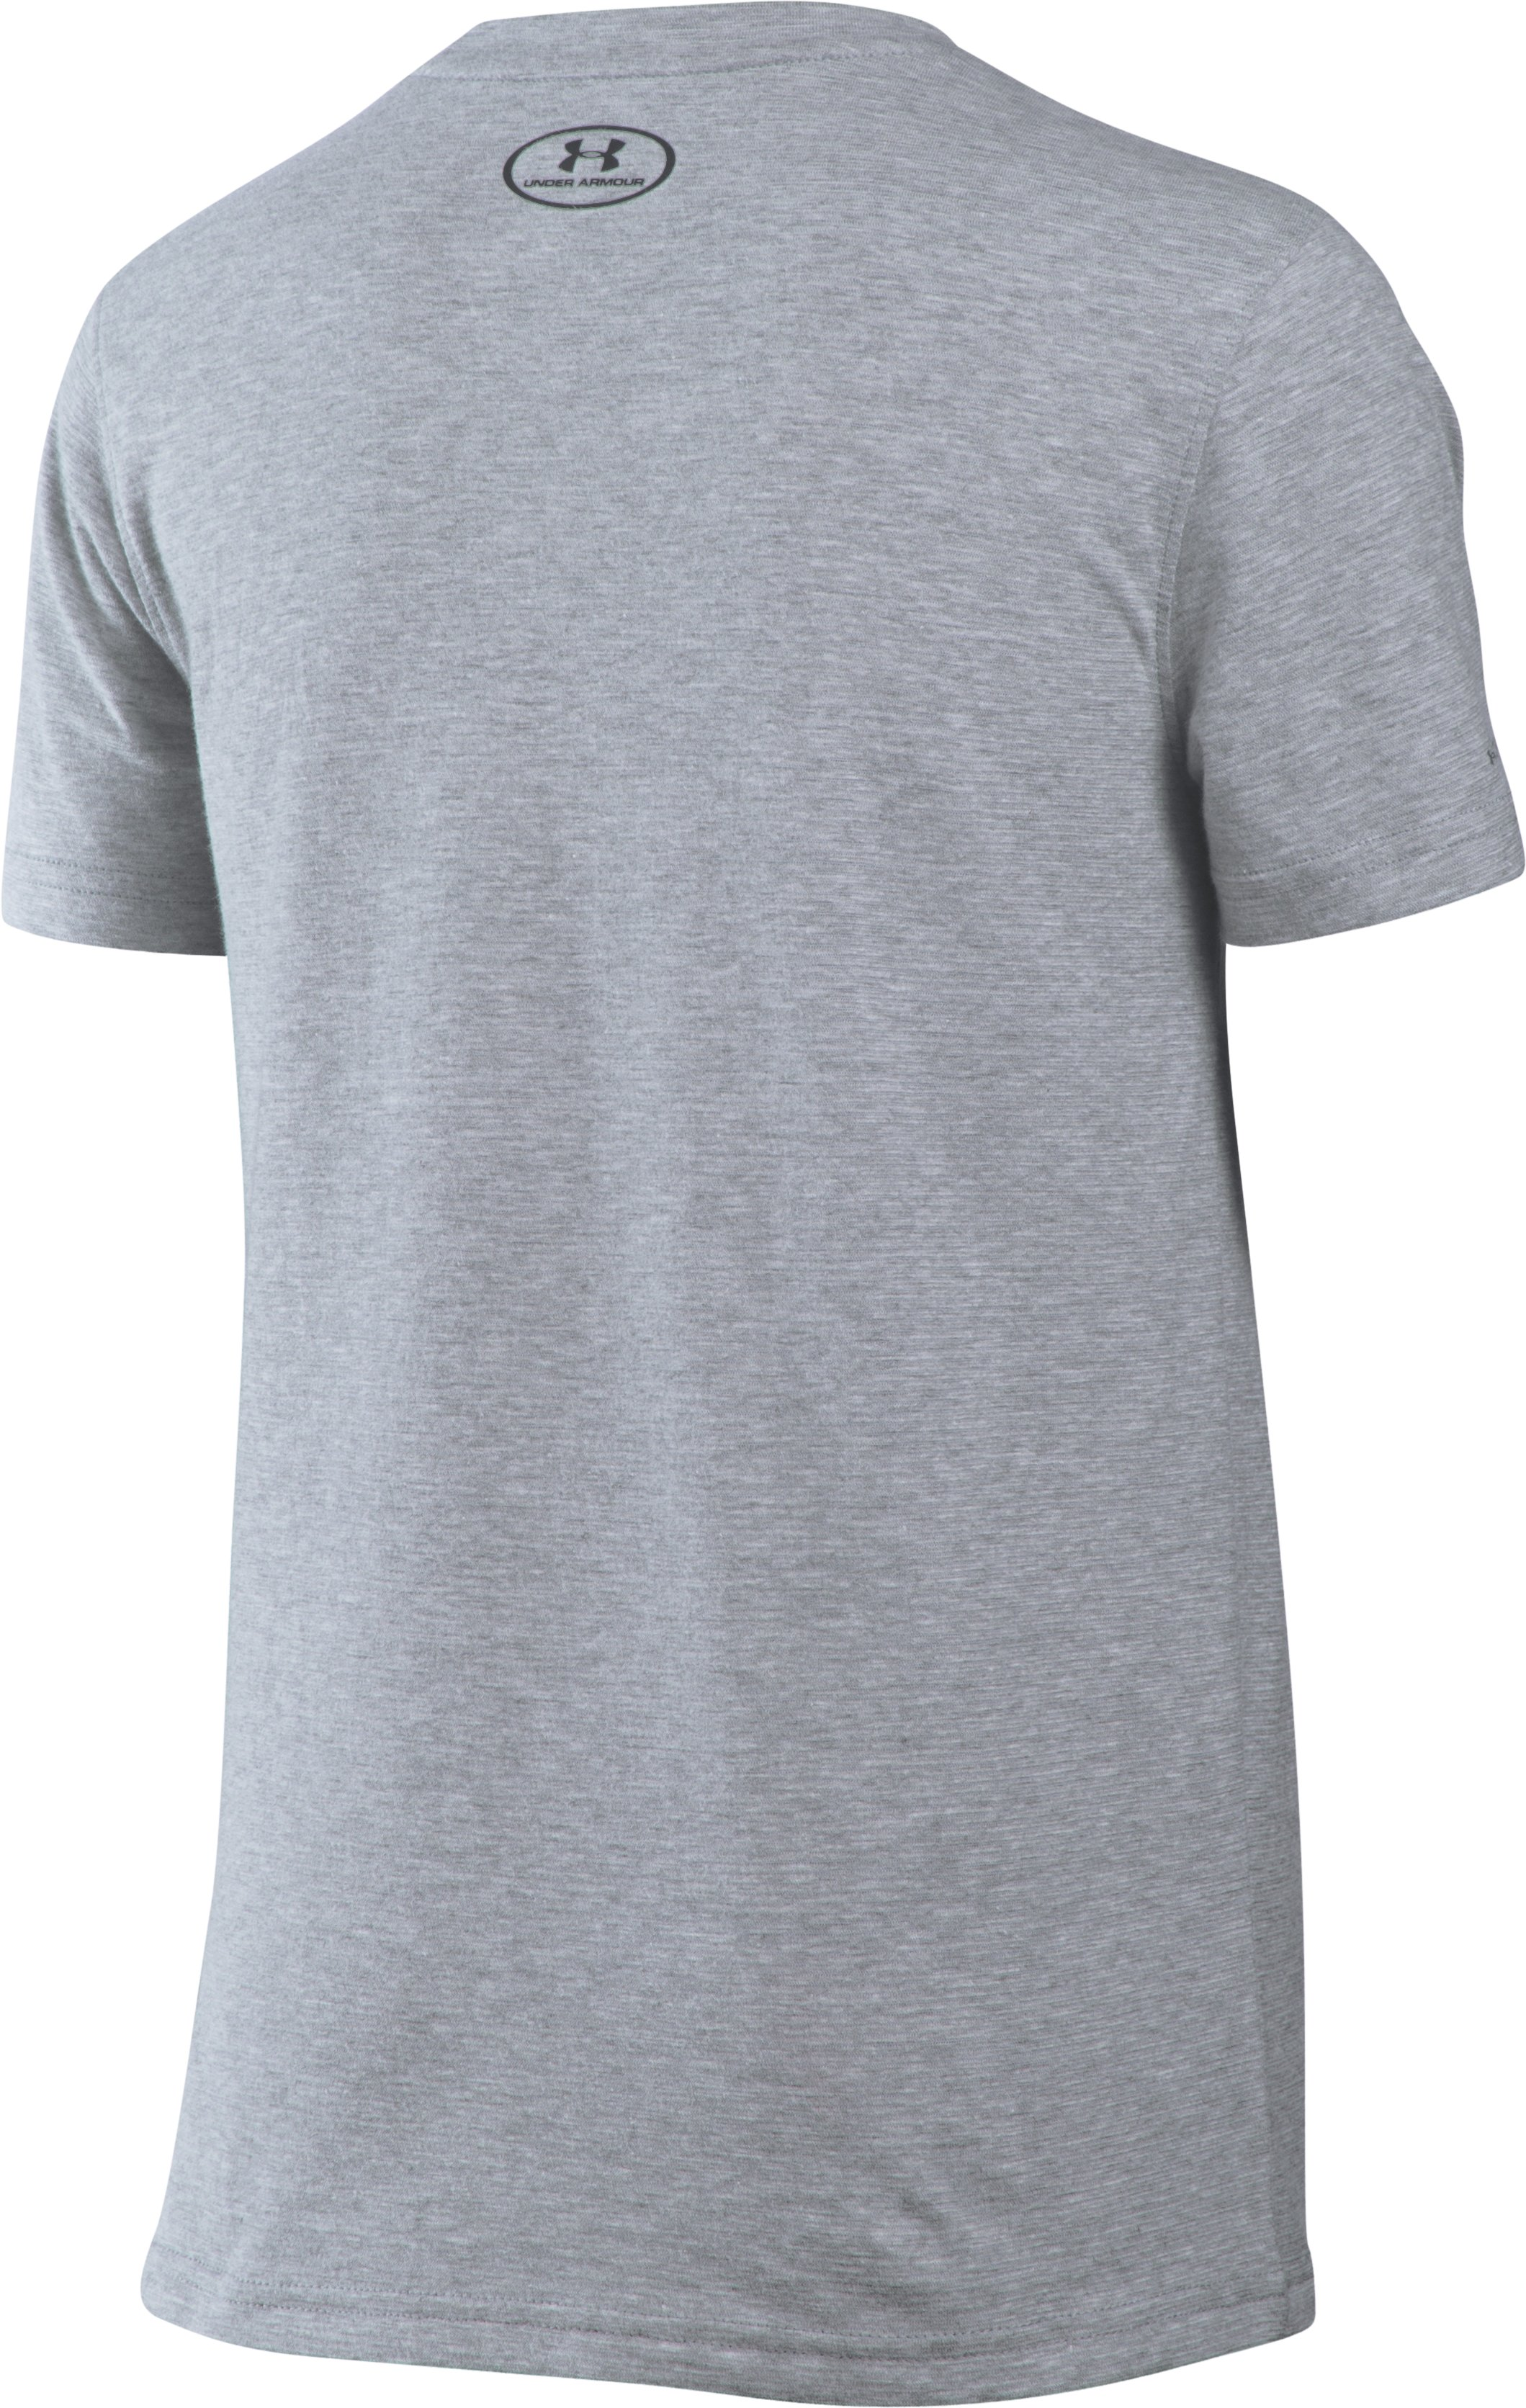 Boys' UA Charged Cotton® T400 T-Shirt, True Gray Heather